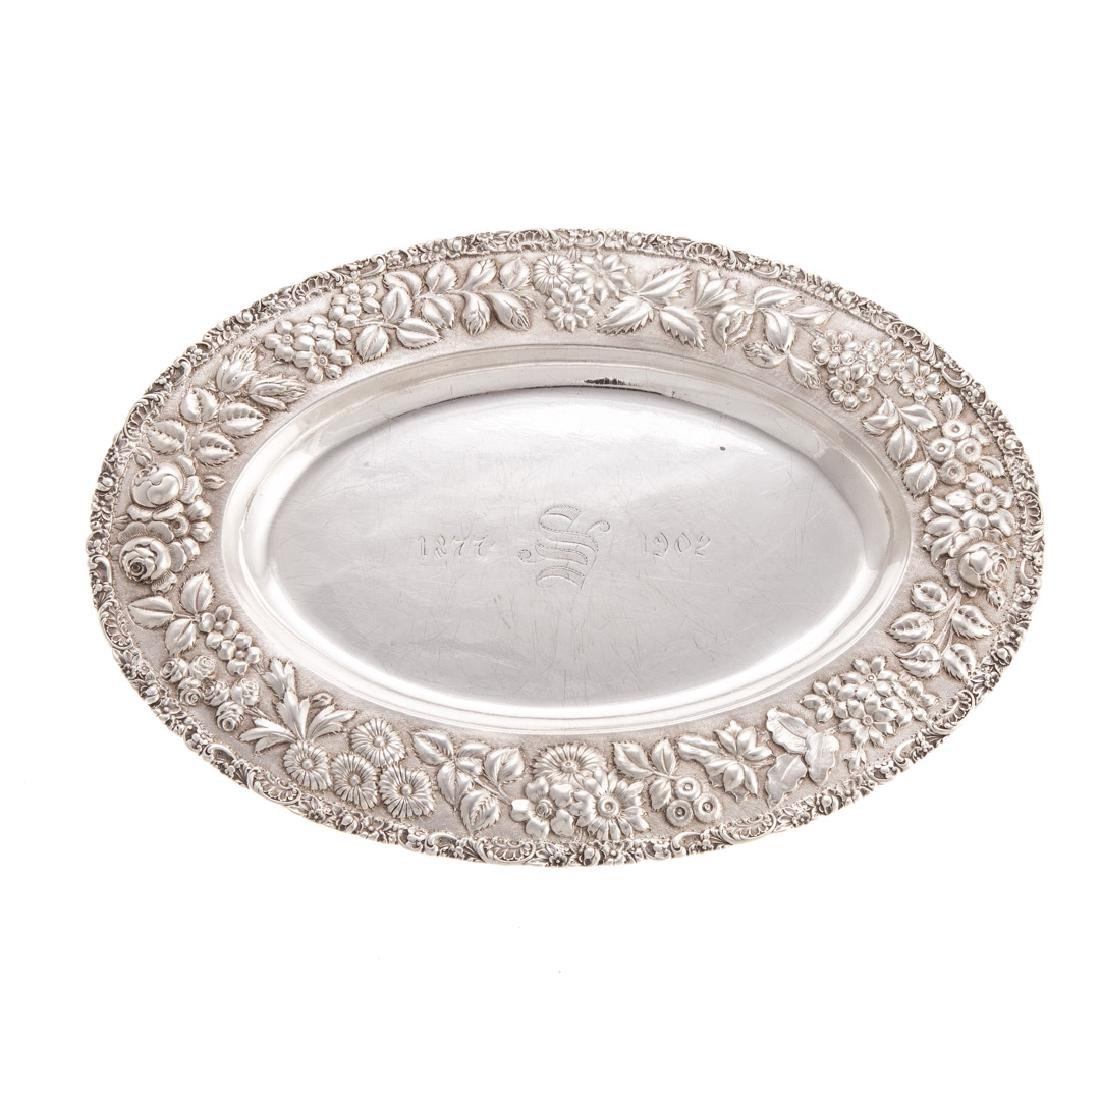 Baltimore Silver Co. repousse sterling oval tray